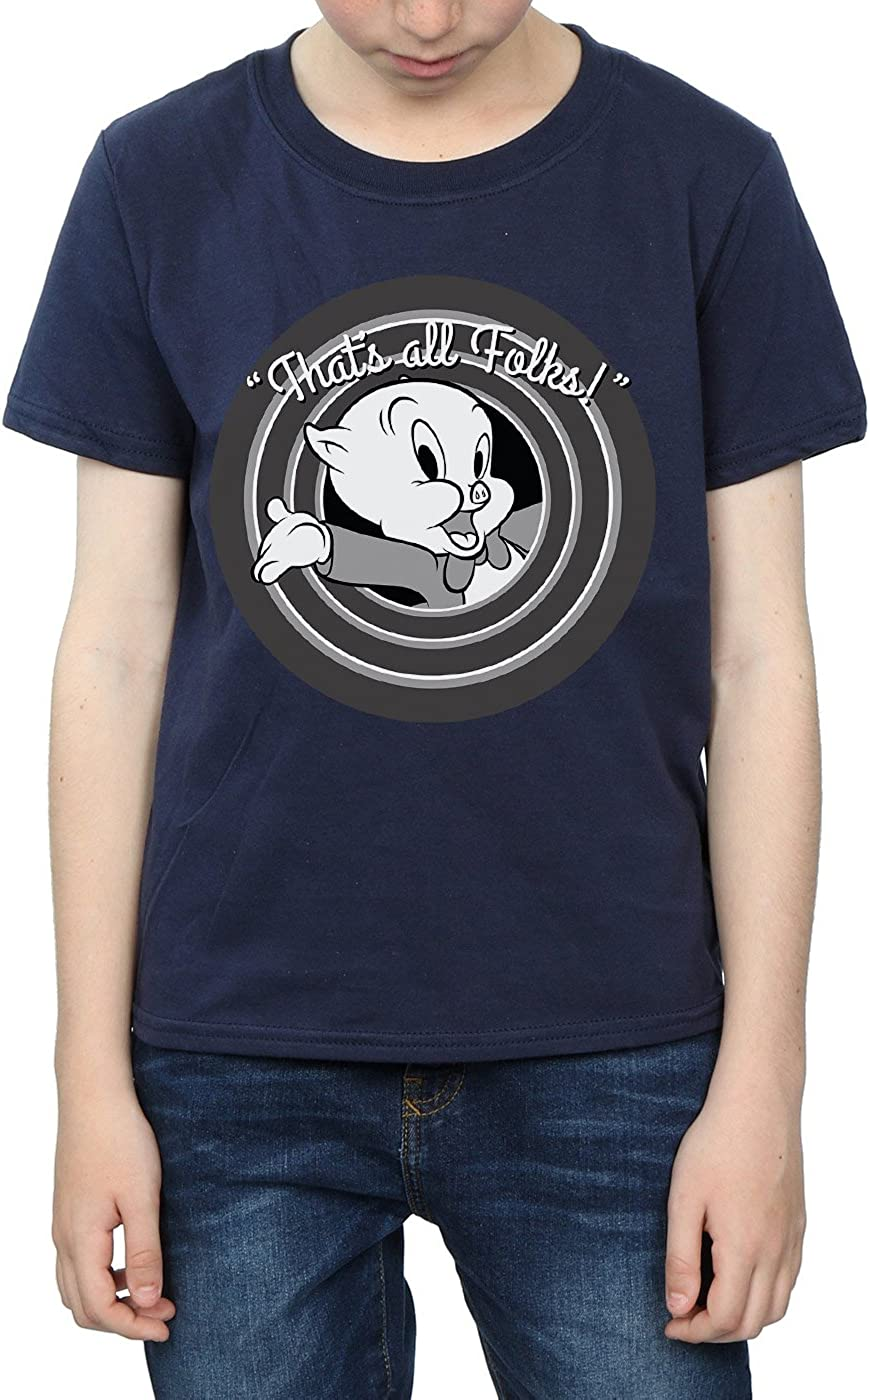 Looney Tunes Boys Porky Pig Thats All Folks T-Shirt